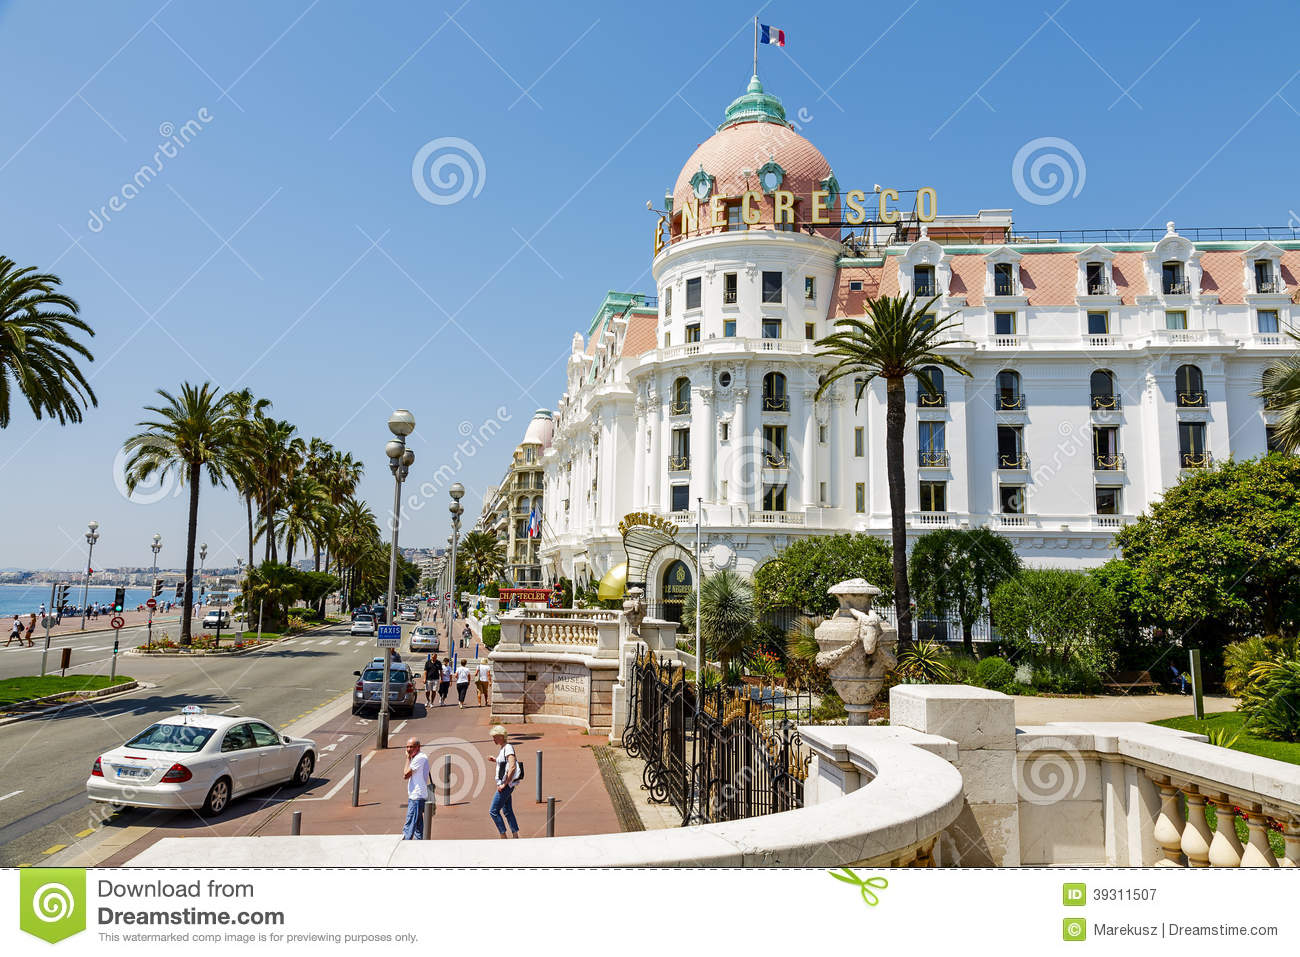 The hotel negresco in nice france editorial photography for Luxury hotels in nice